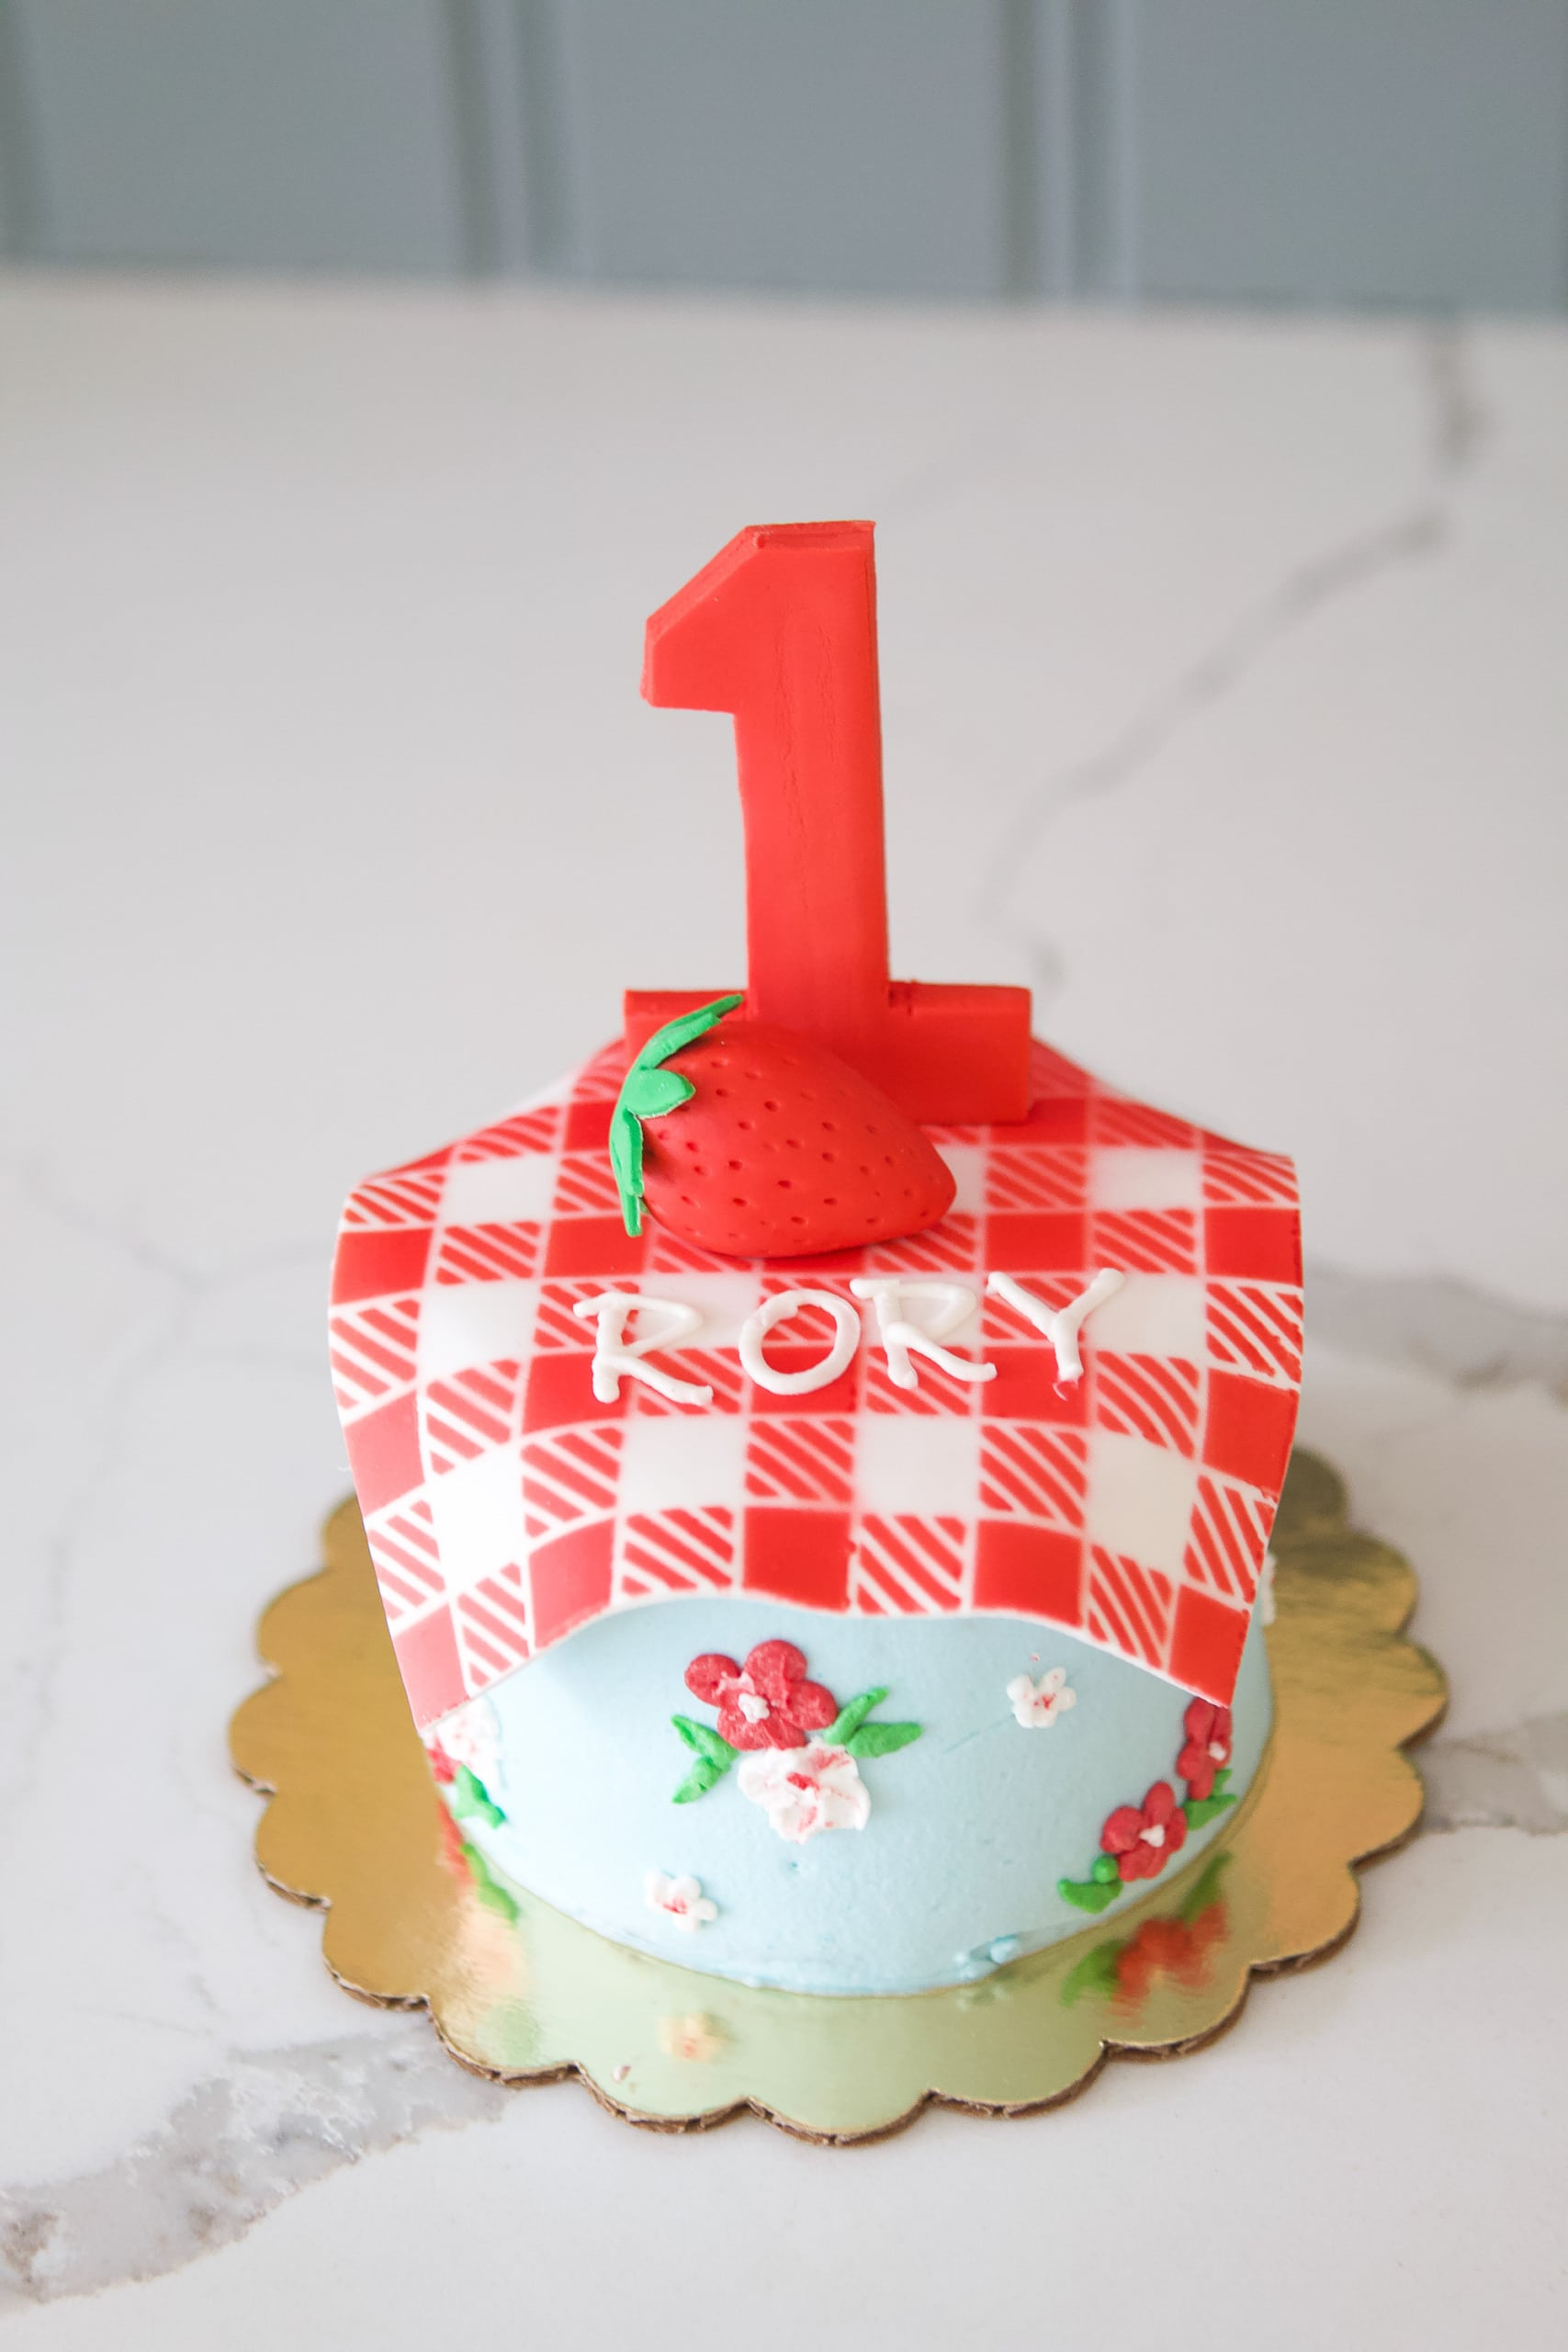 Rory's strawberry themed cake